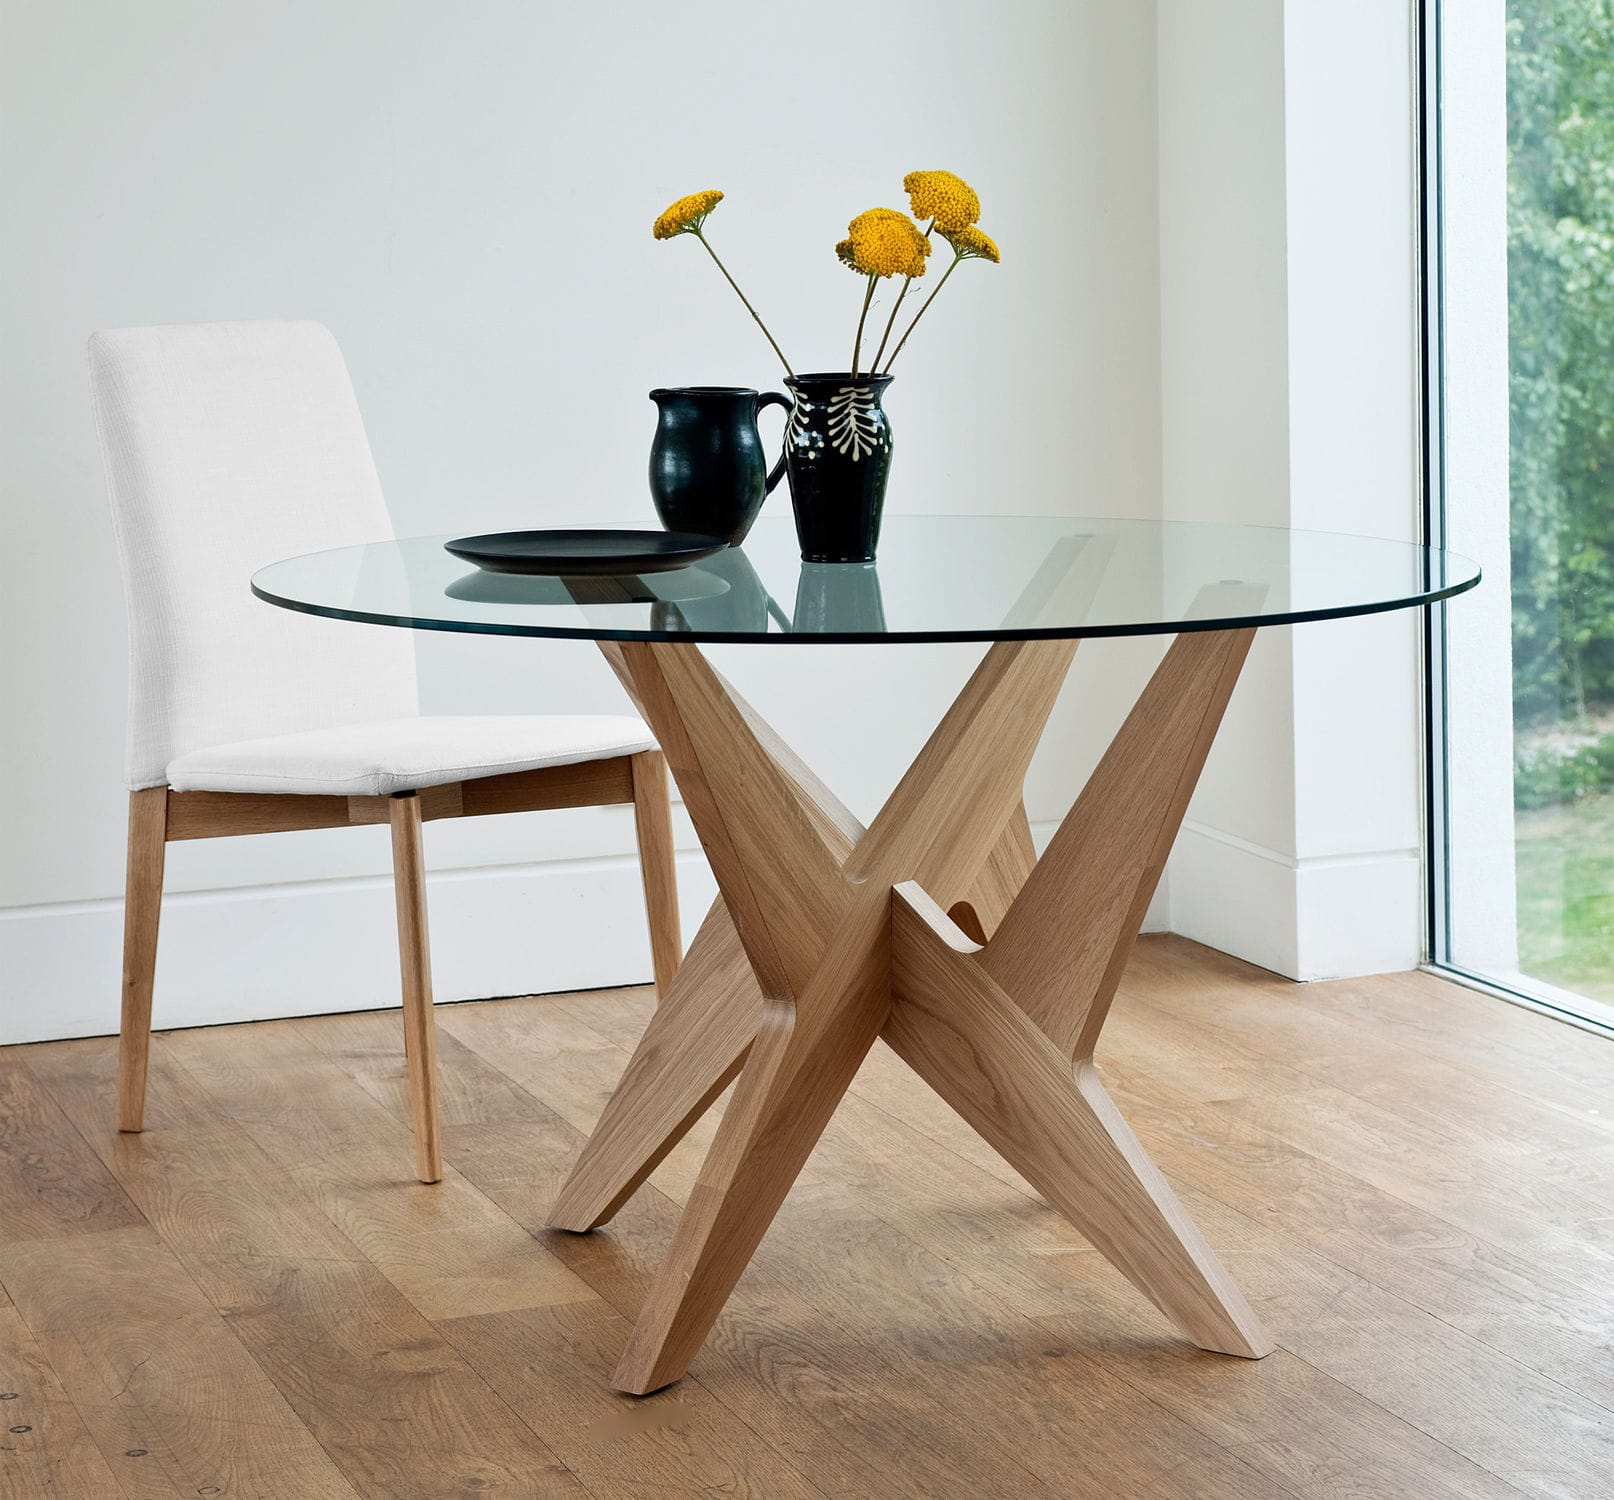 Contemporary dining table glass oak round CROSS SIDE by